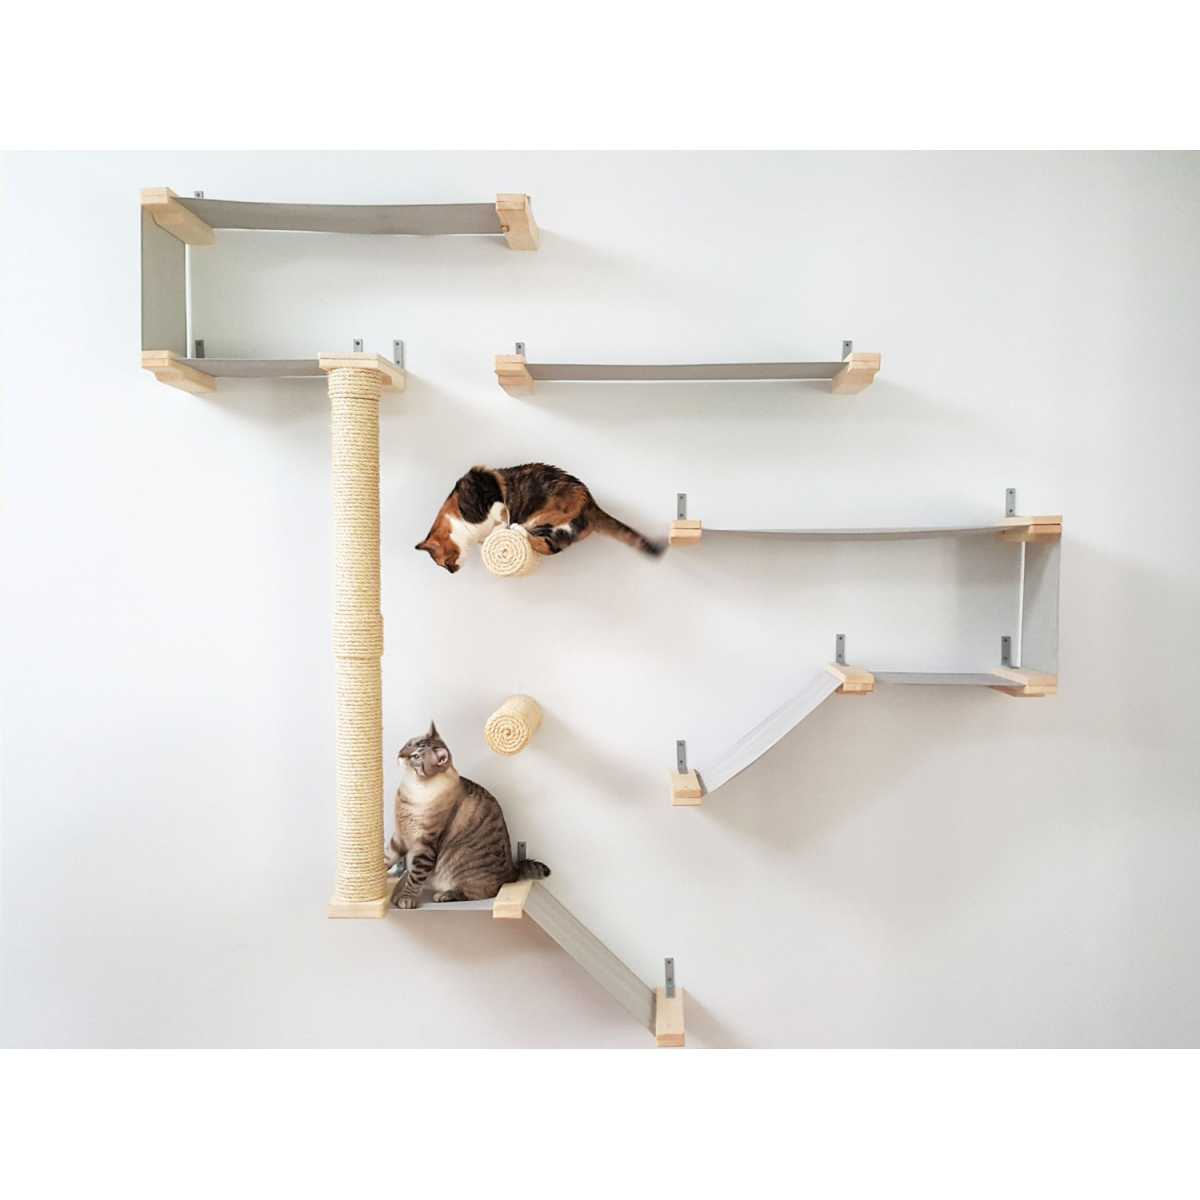 Catastrophicreations Thunderdome Wall Mounted Cat Hammock